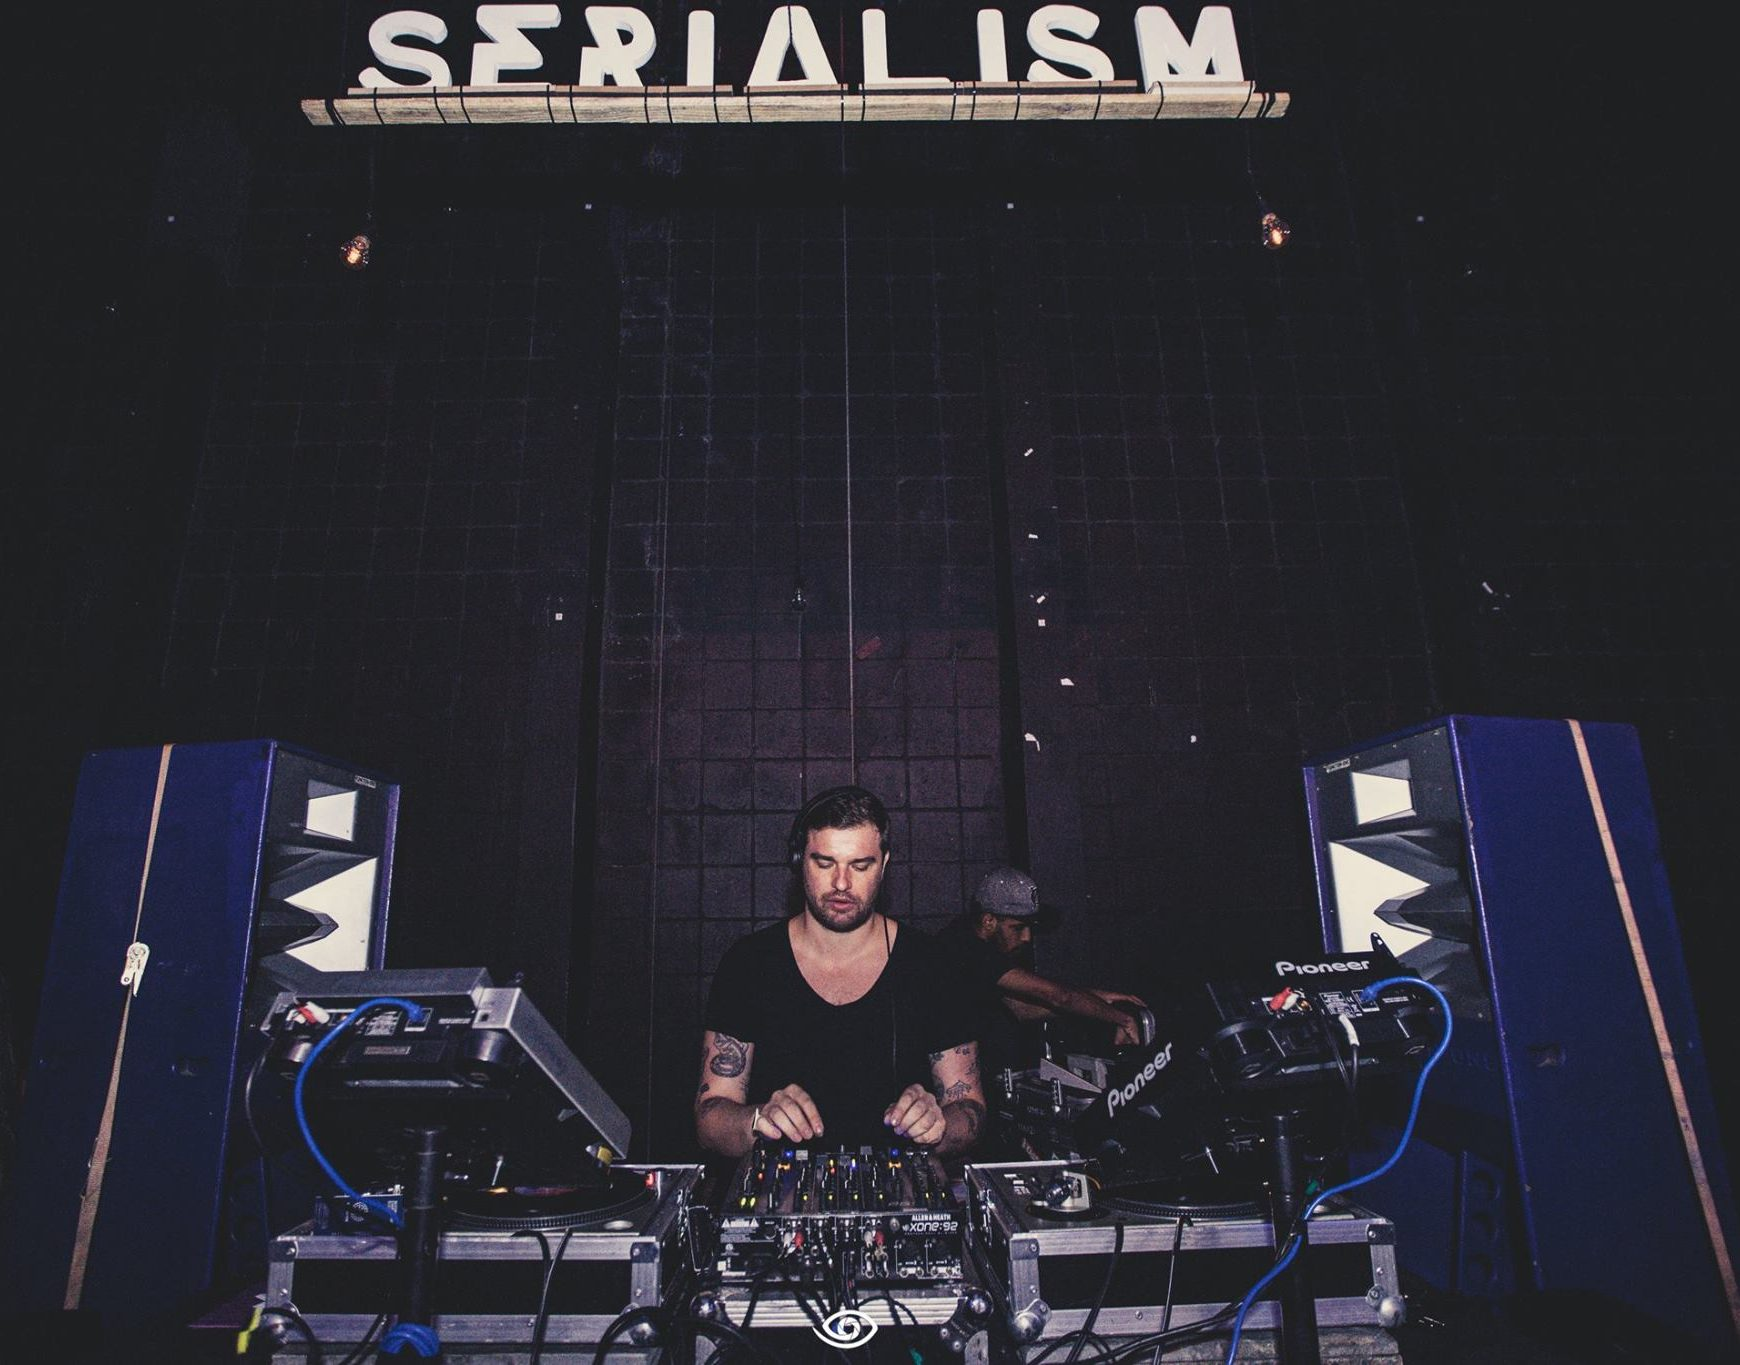 Cesare vs Disorder - Dinner with Bogdan (Original Mix) [MINIMAL] Vakant Records release brings the best of tech-house expert and Serialism Records boss.